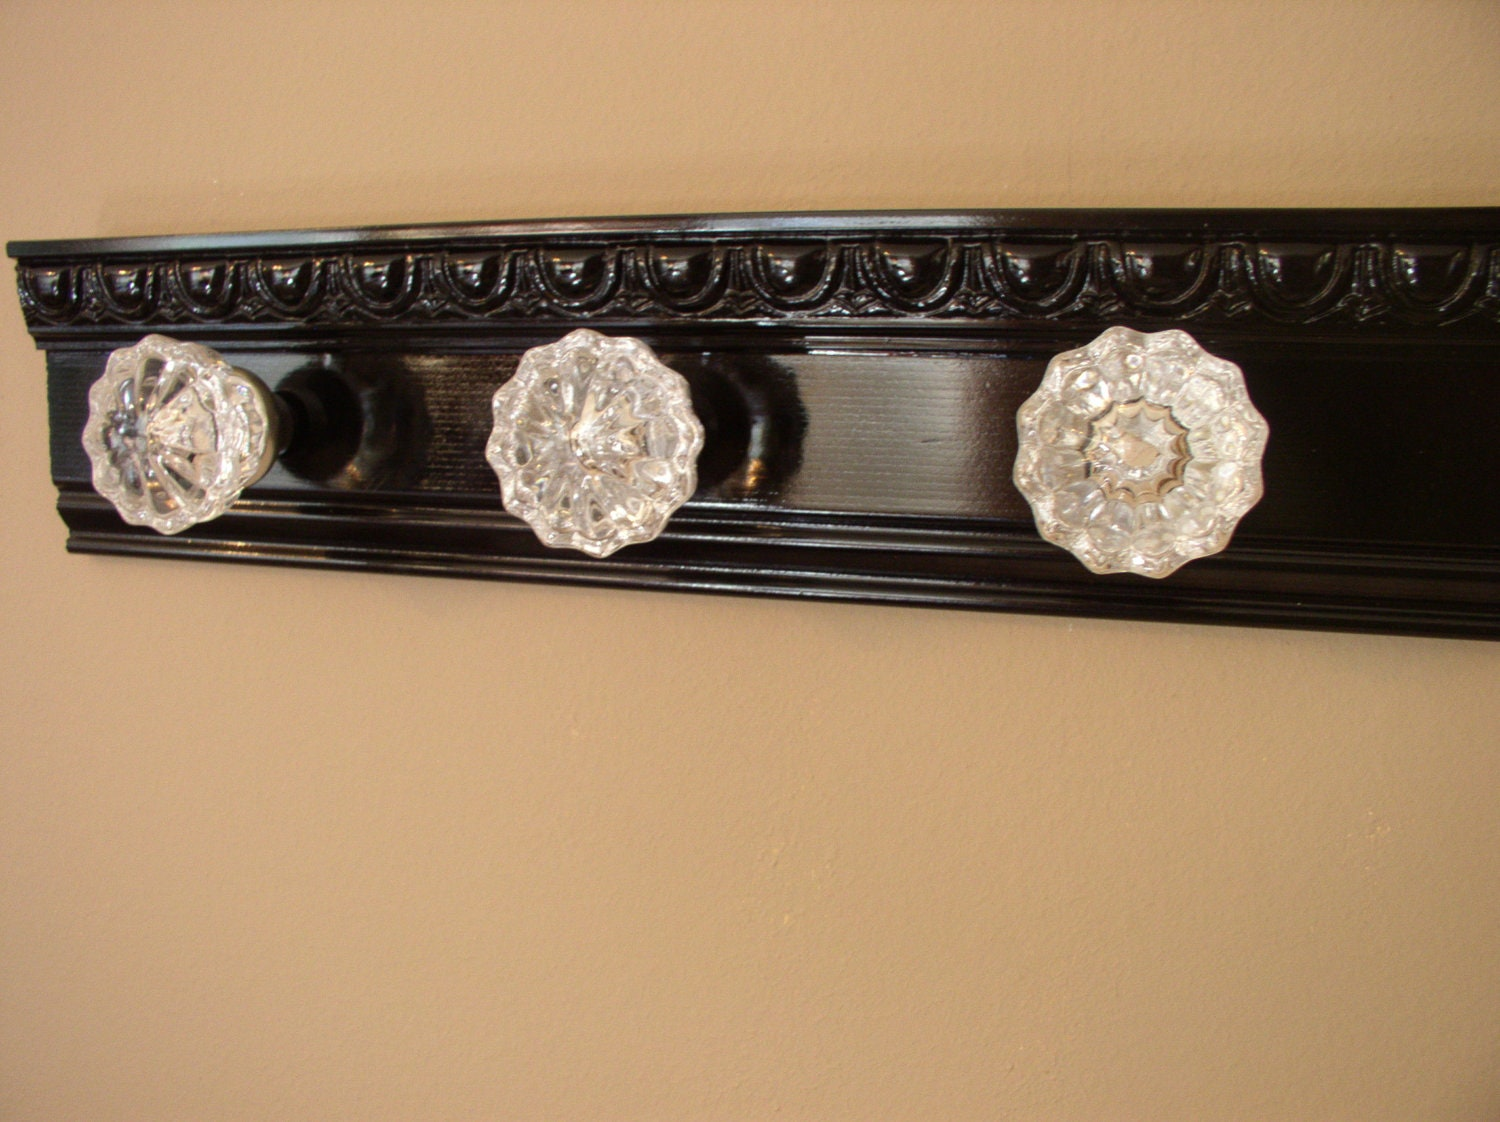 Beautiful coat rack with 3 glass door knobs and decorative